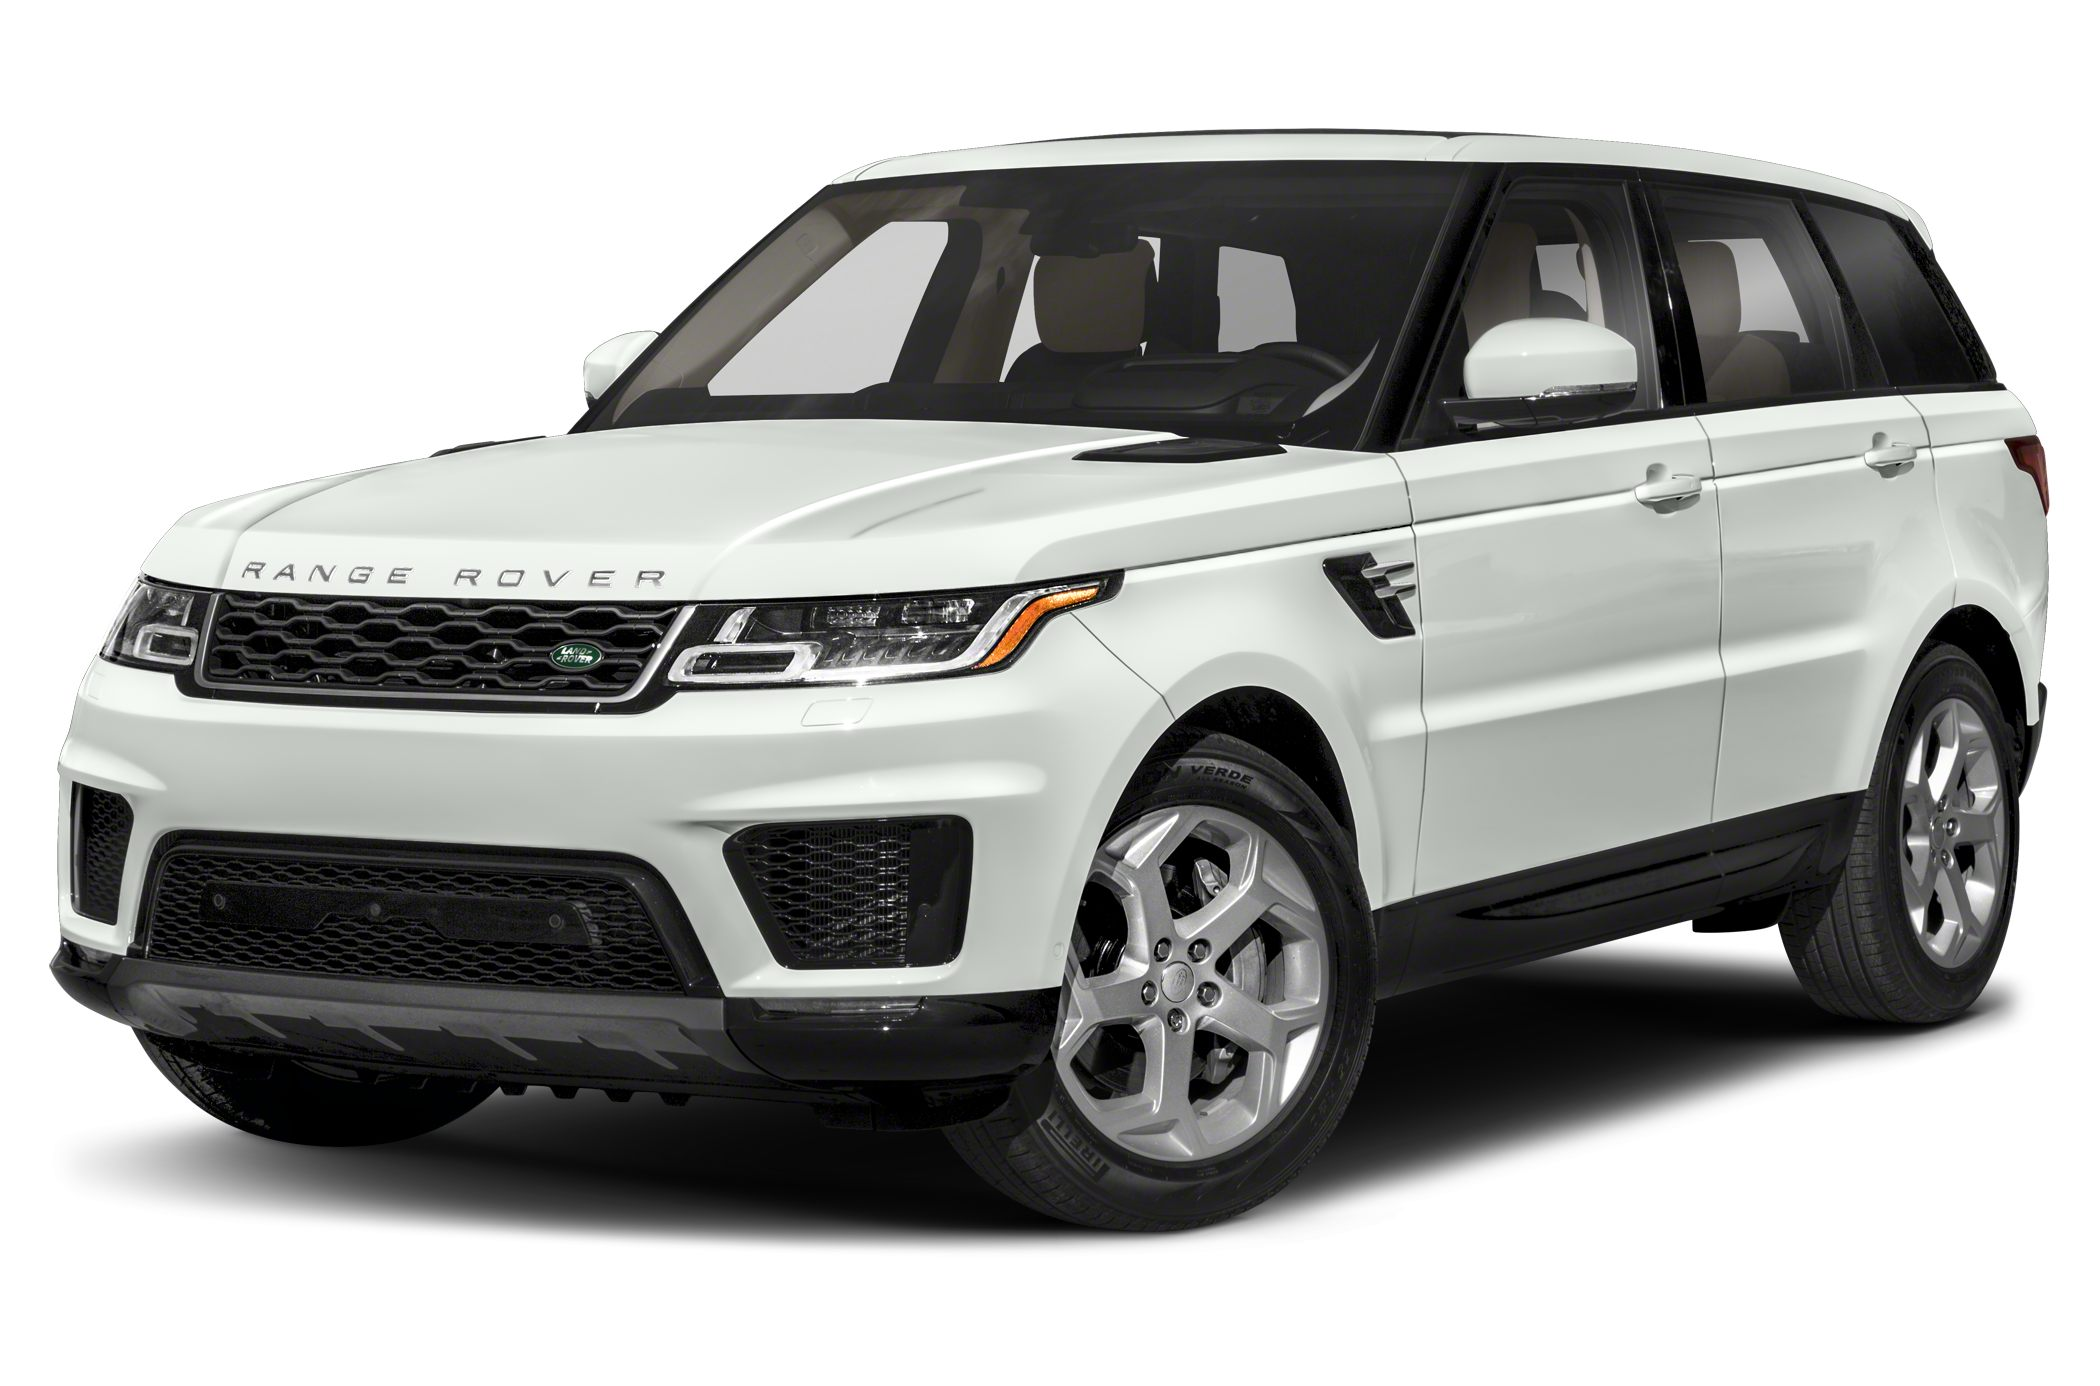 Land Rover Sport >> 2020 Land Rover Range Rover Sport Svr 4dr 4x4 Specs And Prices